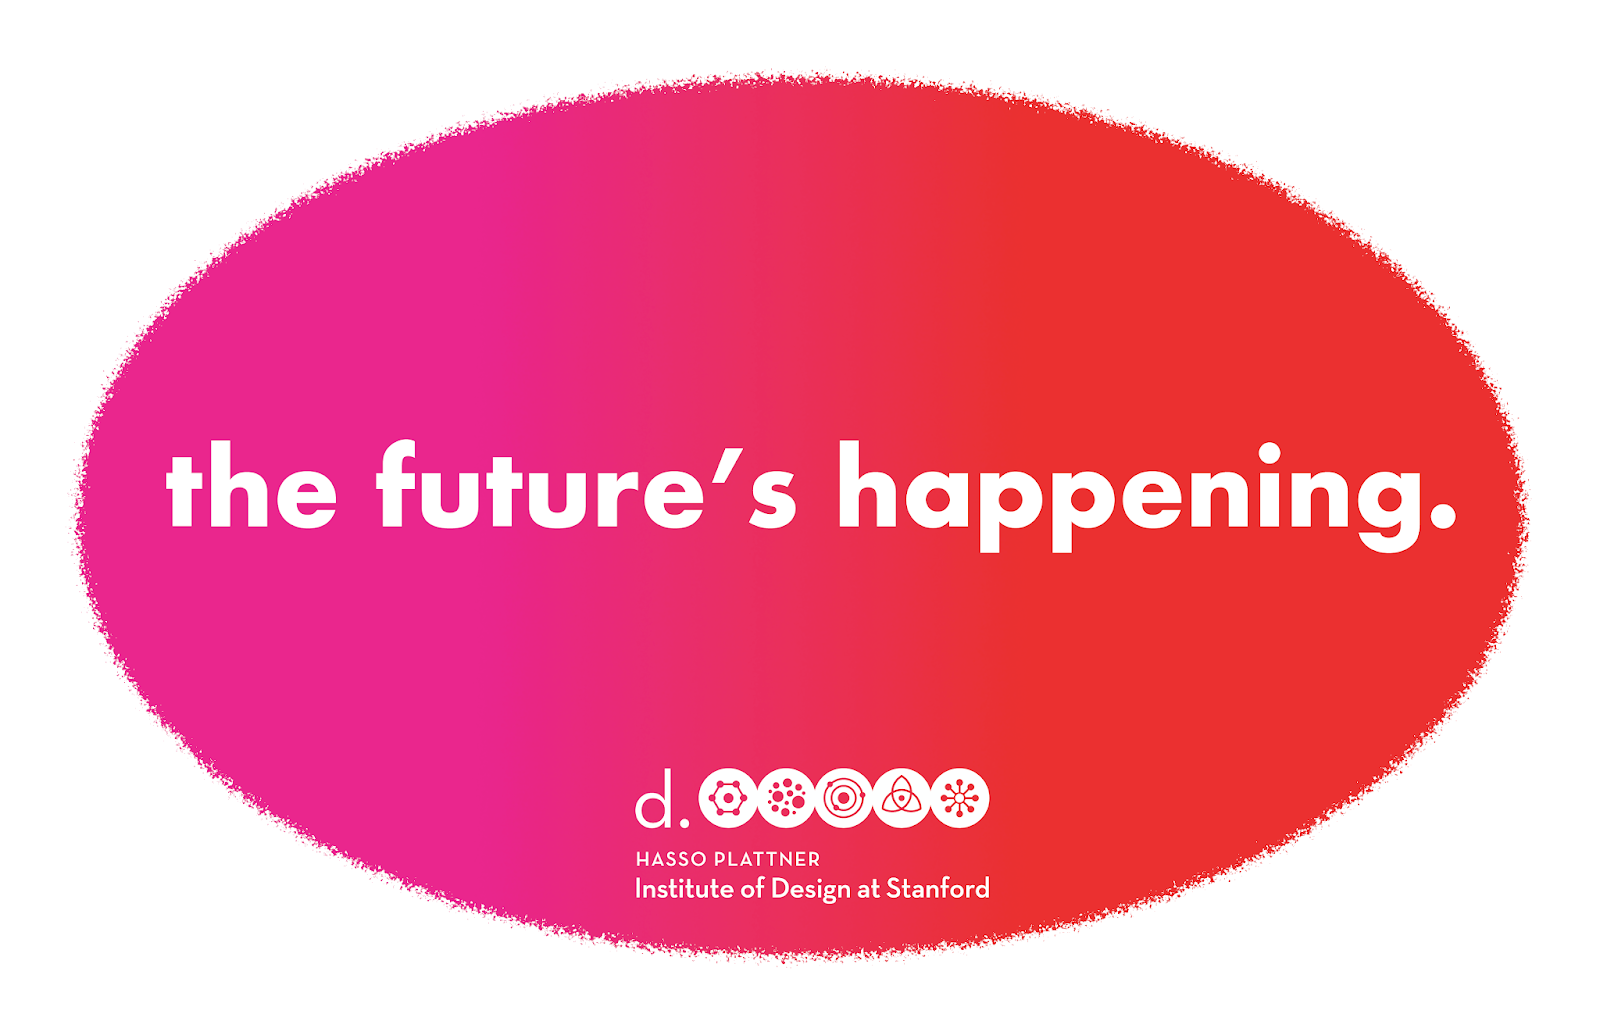 the sceptical futuryst: Bringing futures to Stanford d school